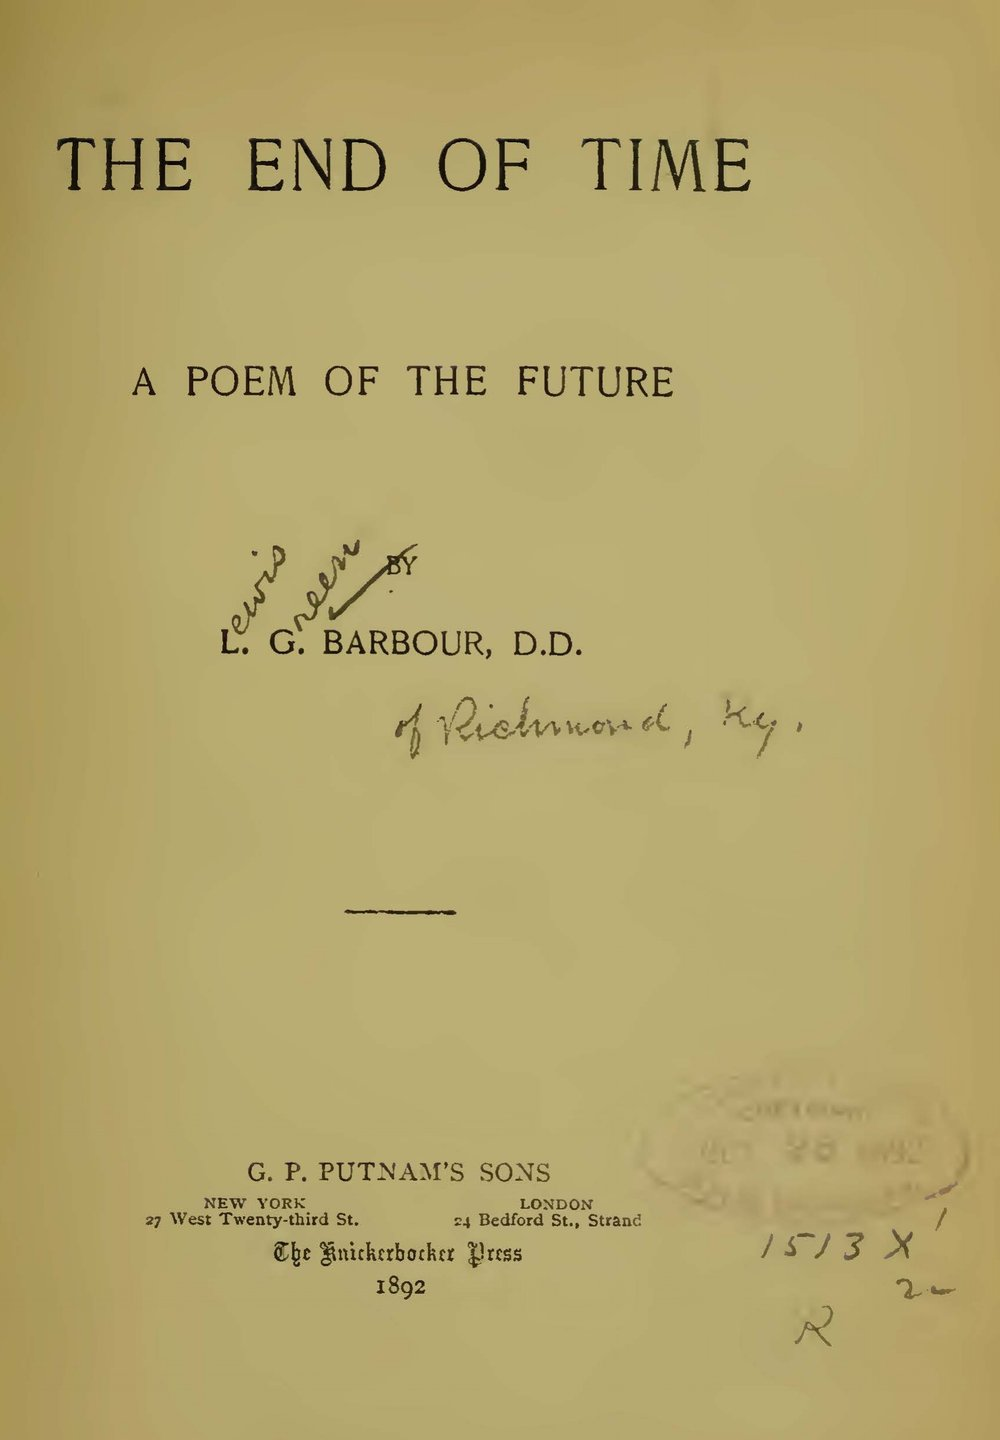 Barbour, Lewis Green, The End of Time, a Poem of the Future Title Page.jpg